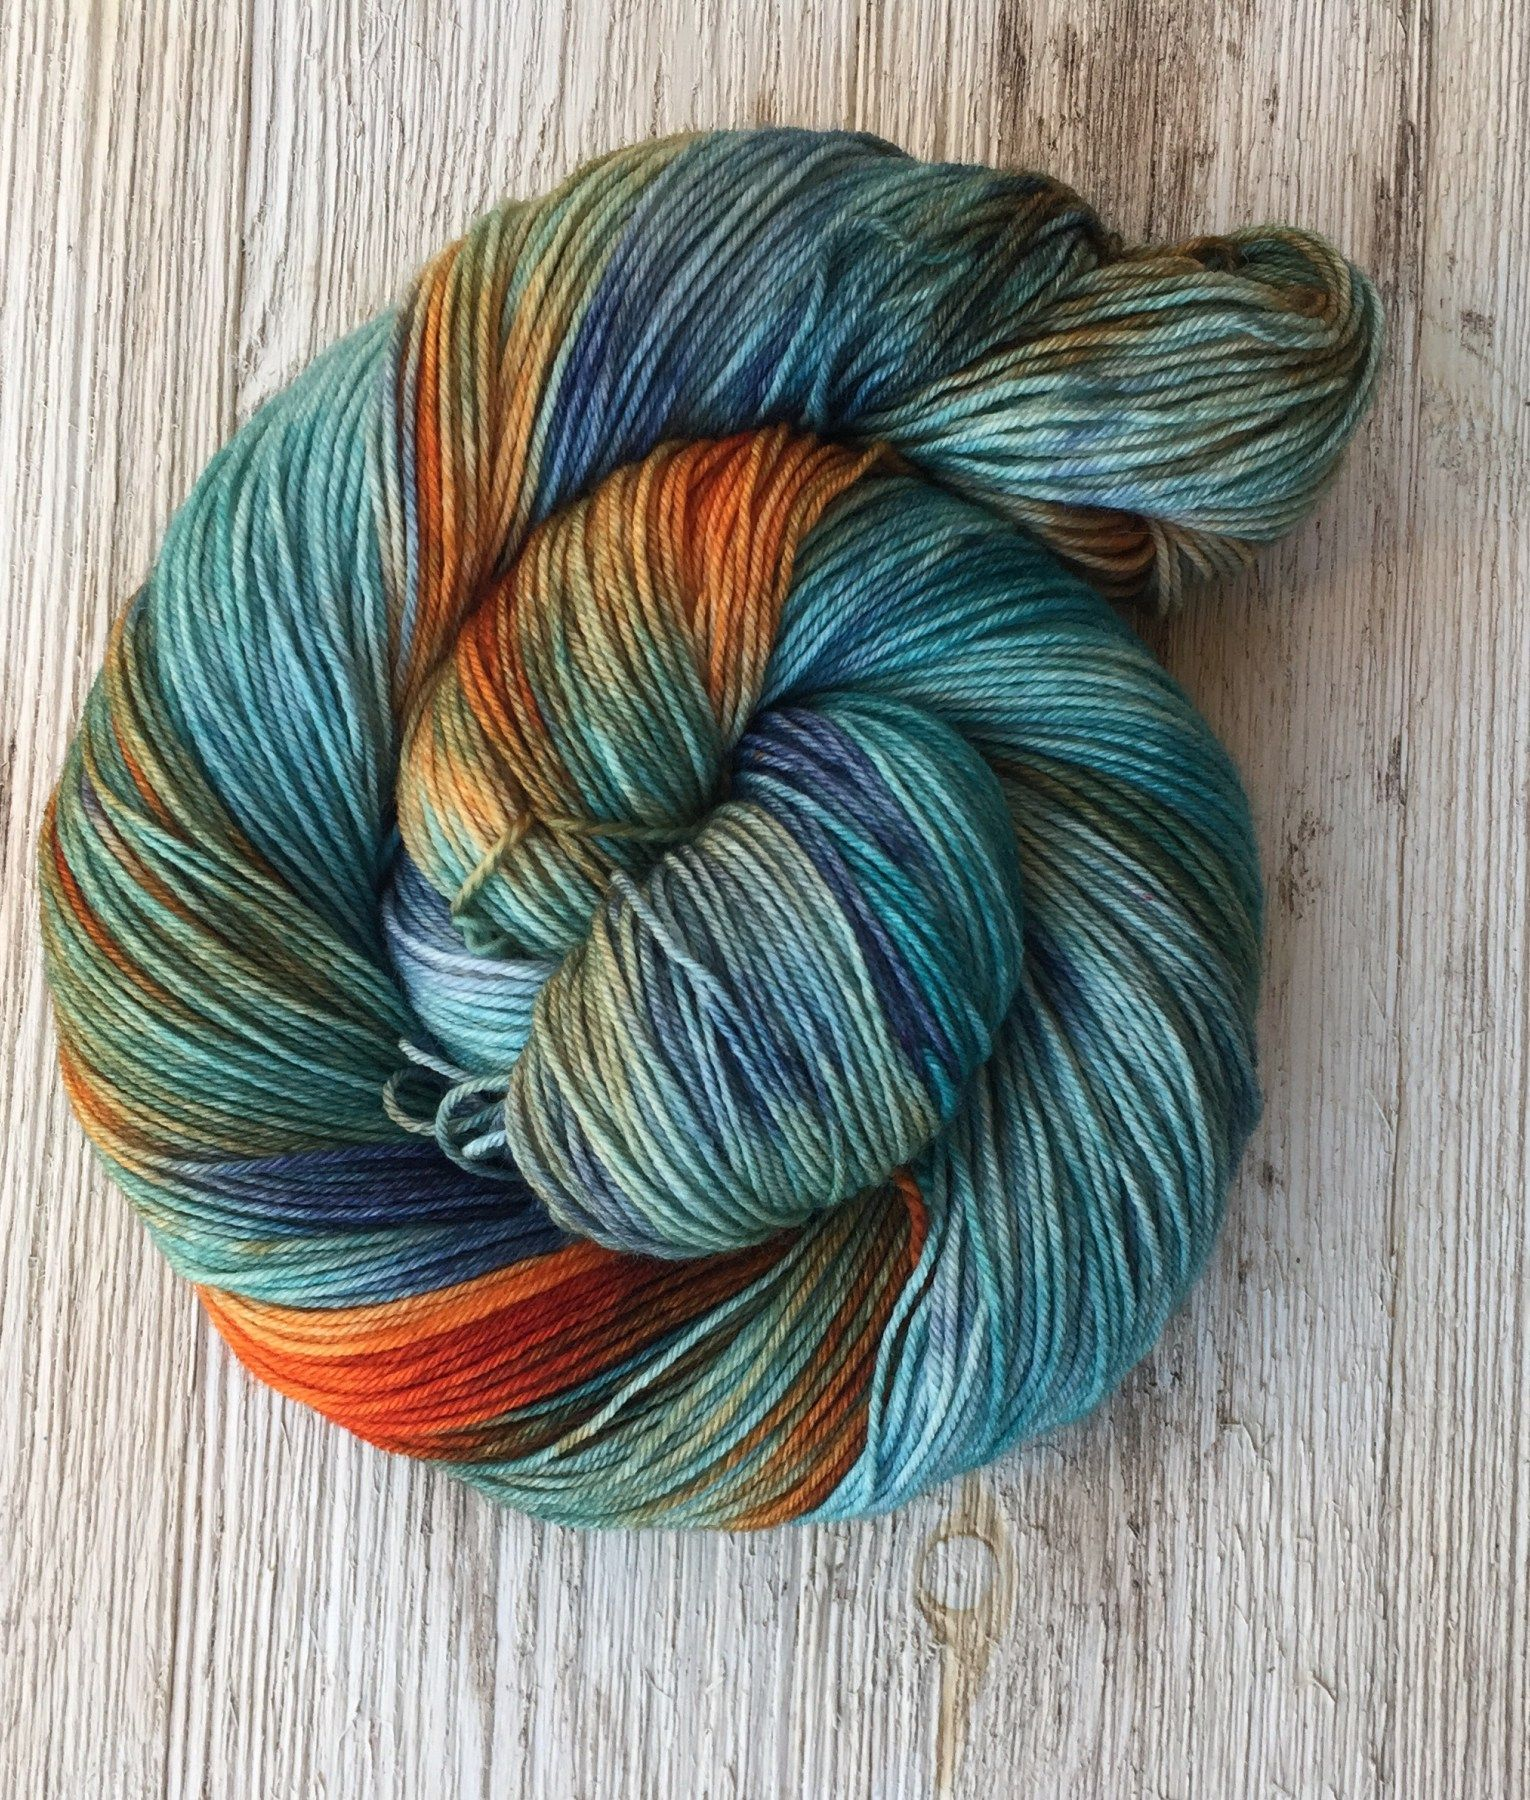 Online Price Venice Beach is a teal yarn with bursts of blues and burnt orange.  Variations can occur between skeins since they are all dyed one by one. It's recommended that you wash your…